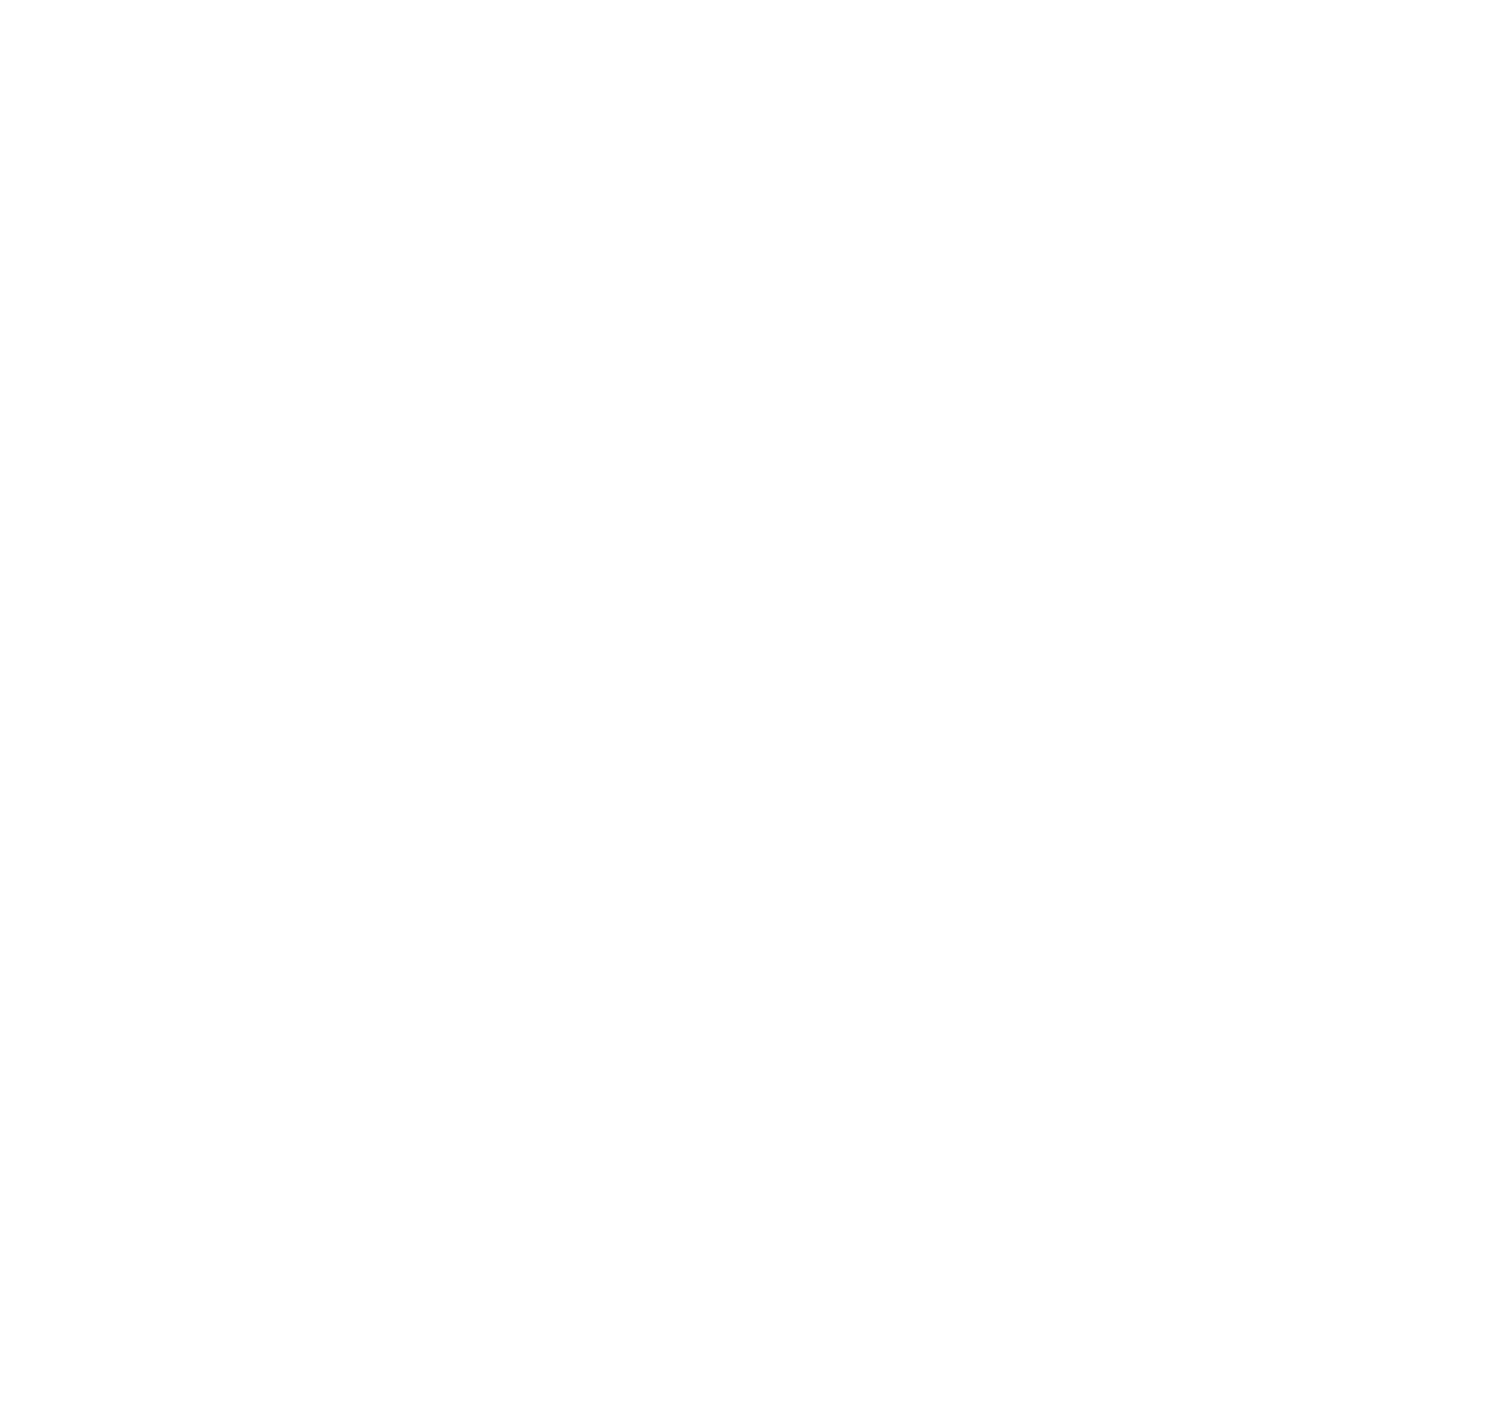 Station View Kennels & Cattery